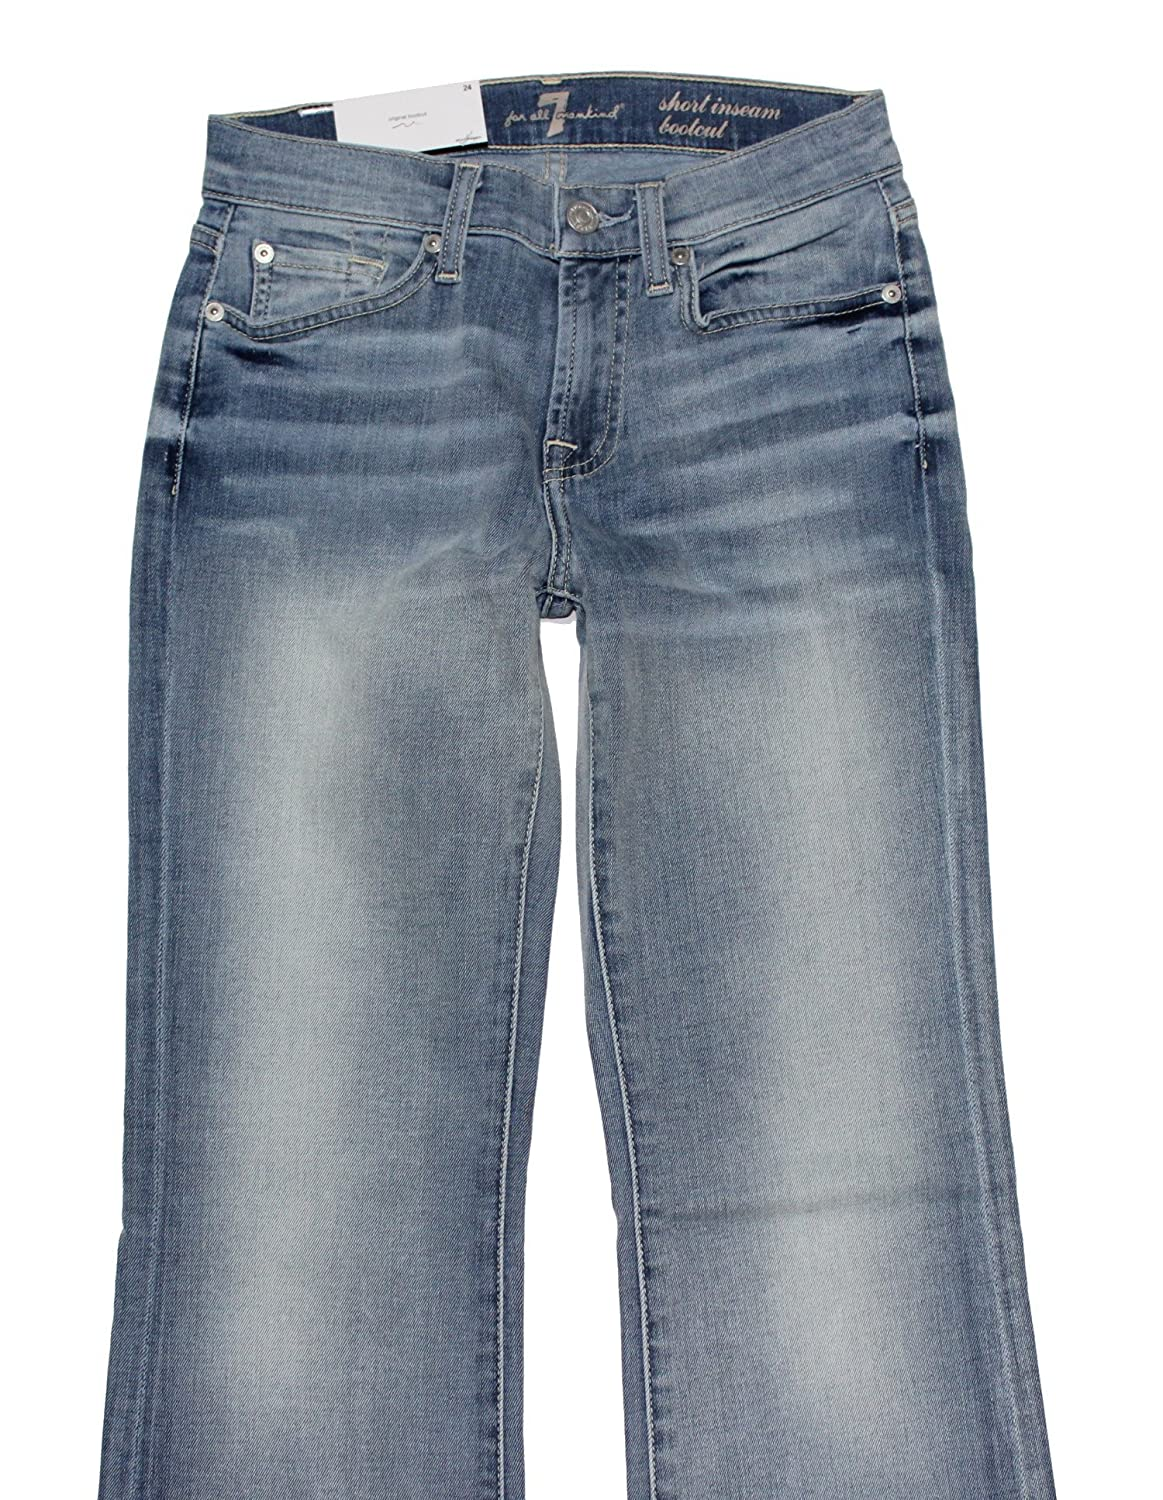 7 For All Mankind Women's Short Bootcut Jeans in Powder